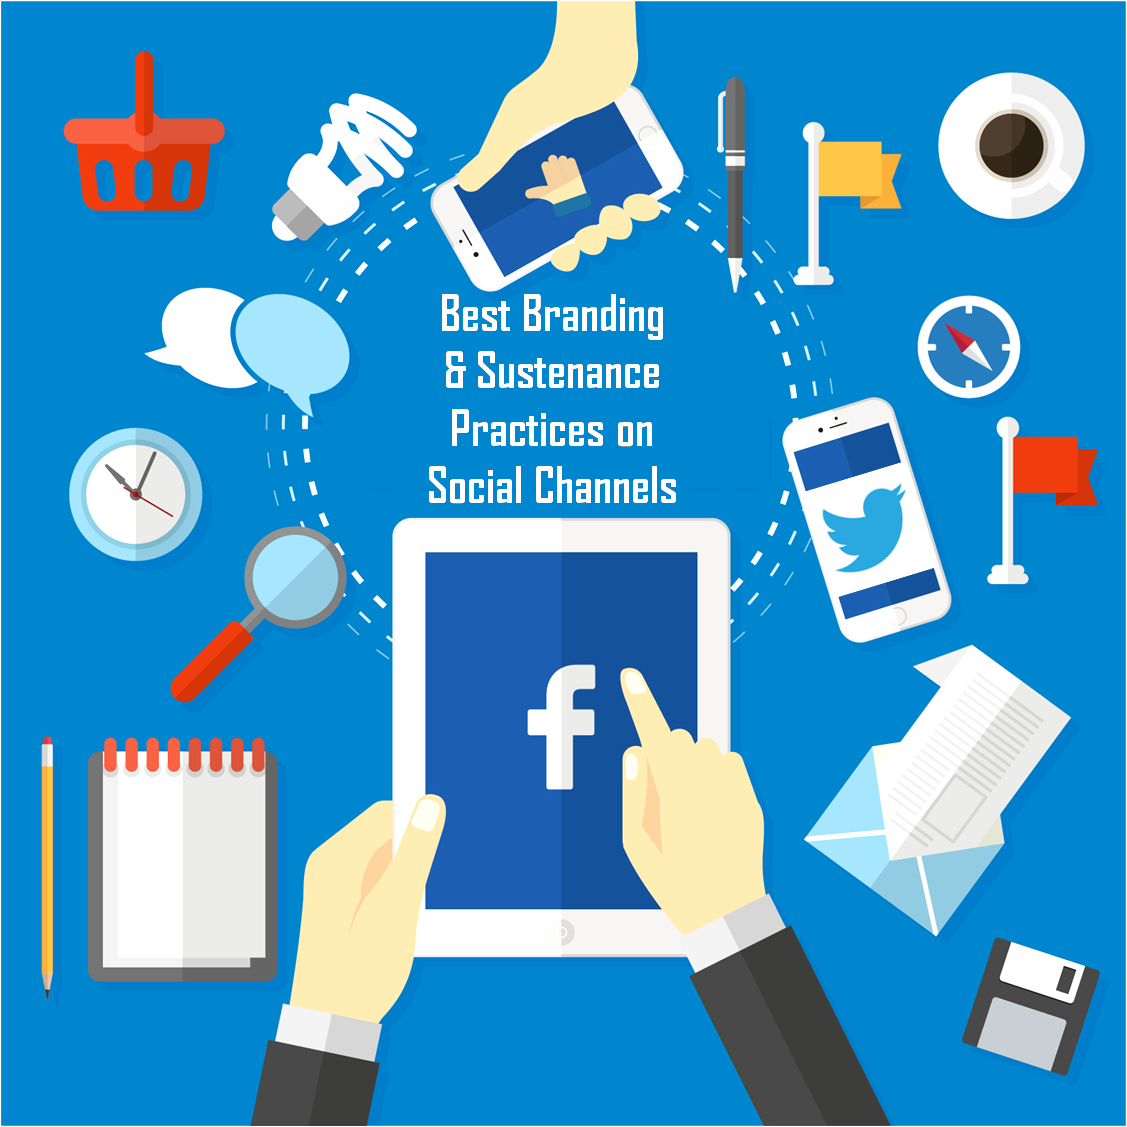 Best Branding and Sustenance Practices on Social Channels